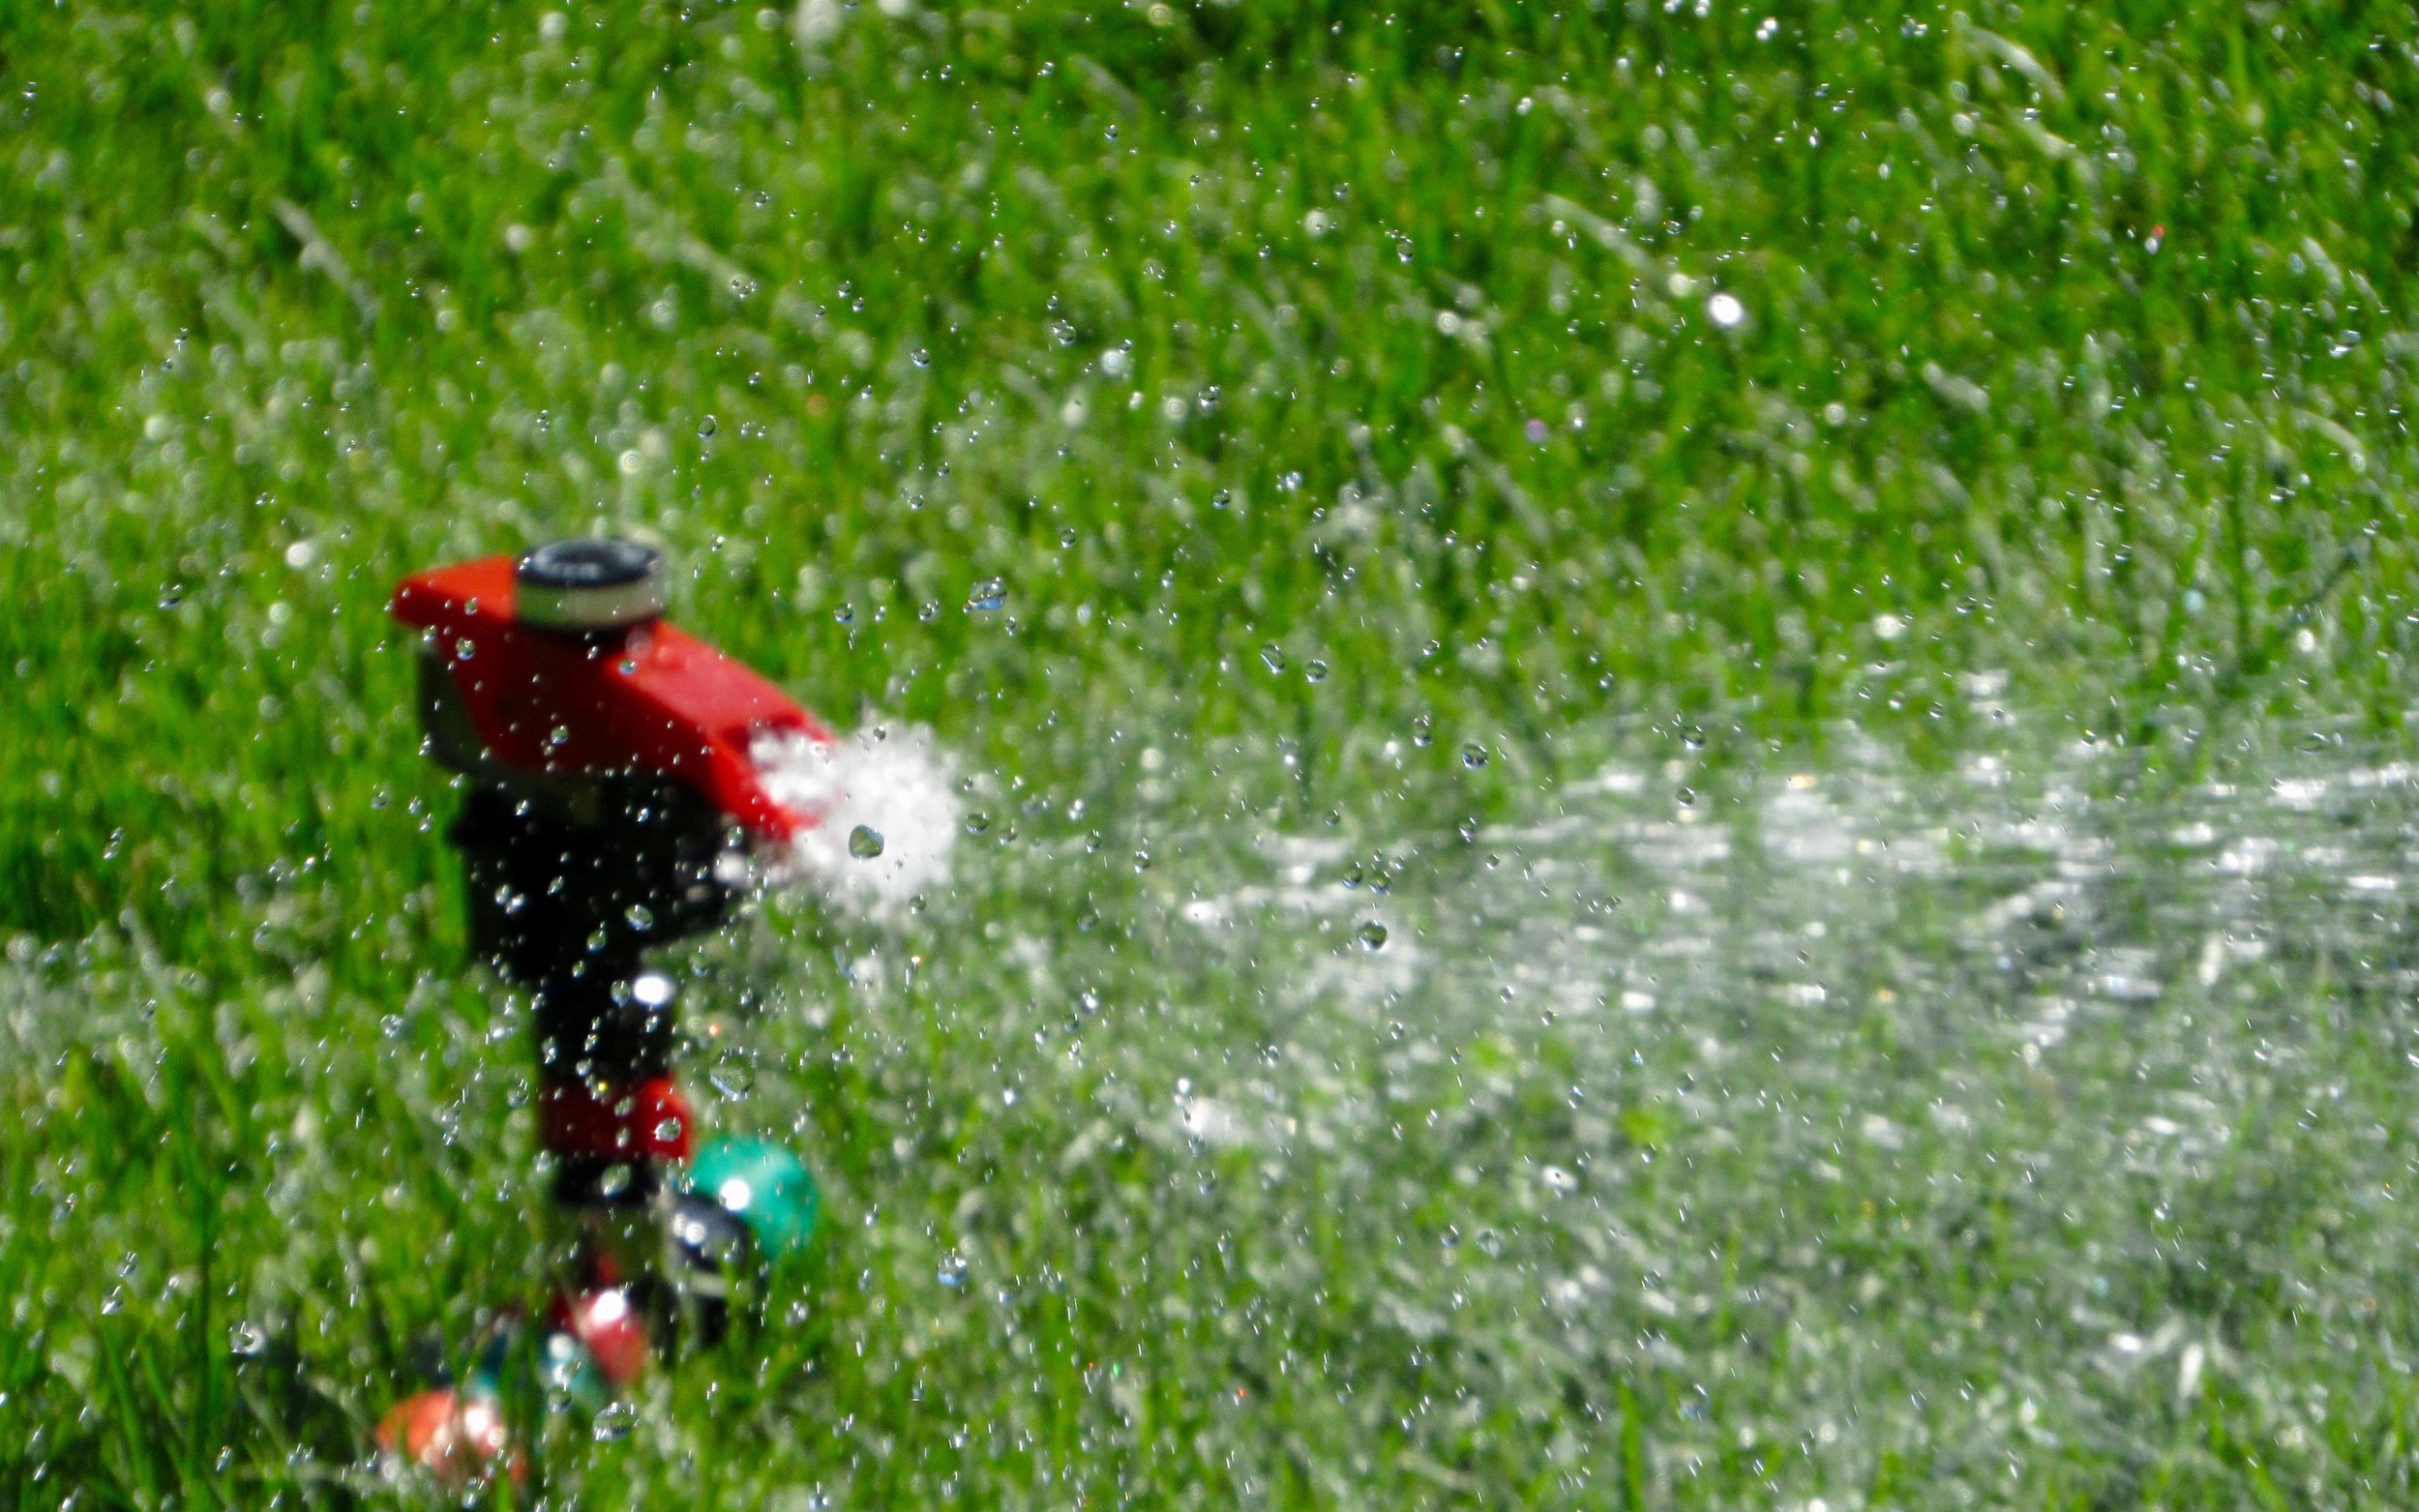 """Let 'um rip!"" - The shout resounds past a row of matching houses.                    1, 2, 3 Sprinklers blast water skyward. Ten children line the edge of the first yard. Charge! Twenty feet dash into misted grass. Only green knees and twisted bathing suits tell anyone this is not the first run of the day."